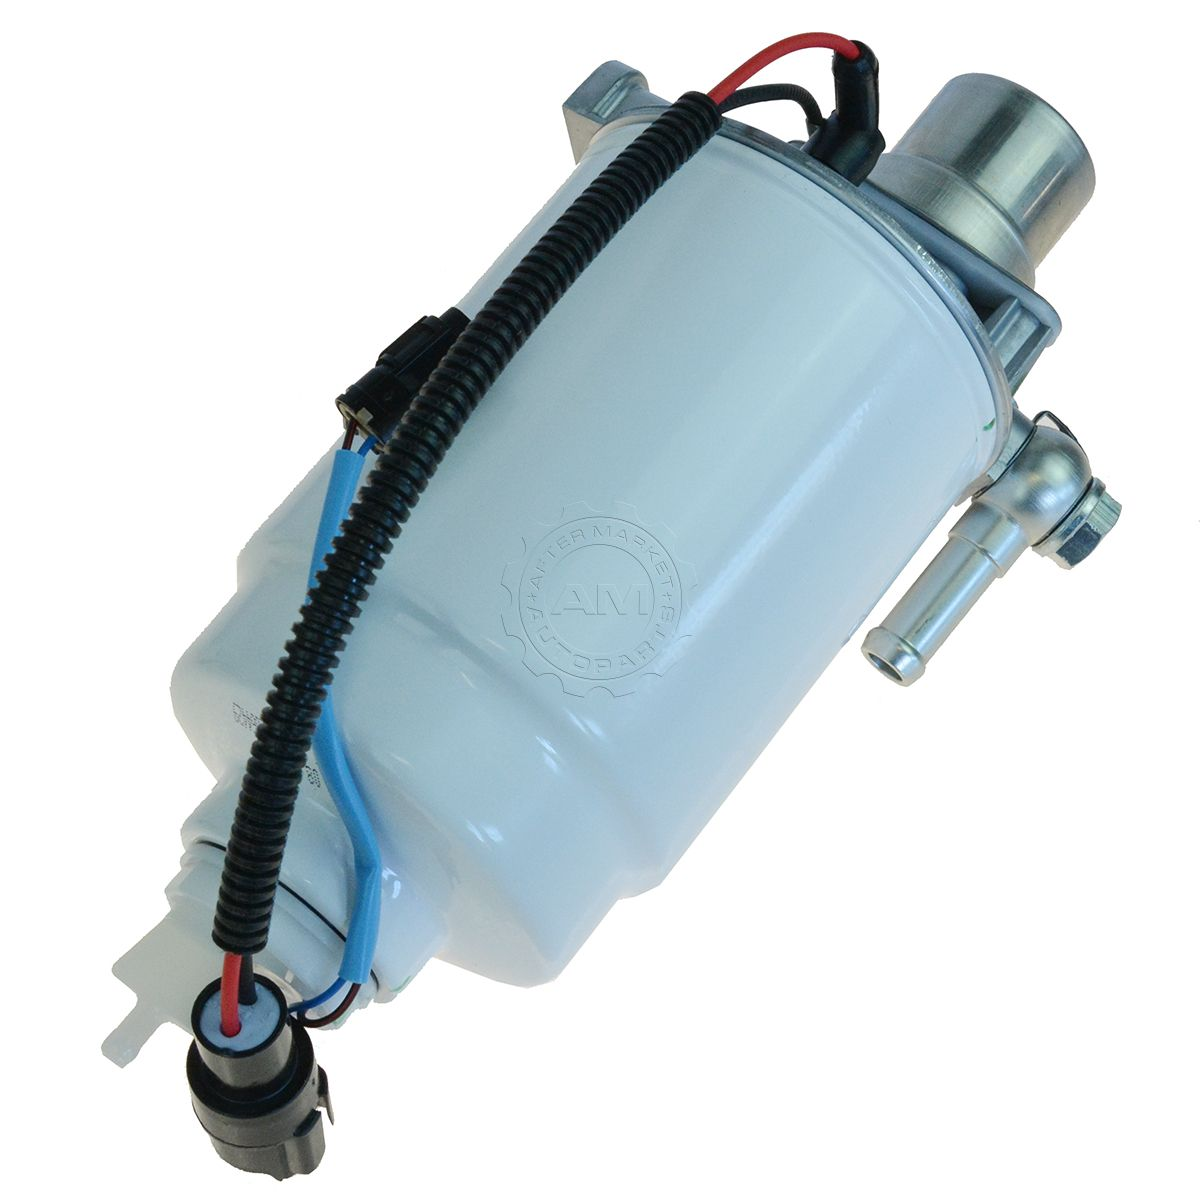 duramax fuel filter housing assembly